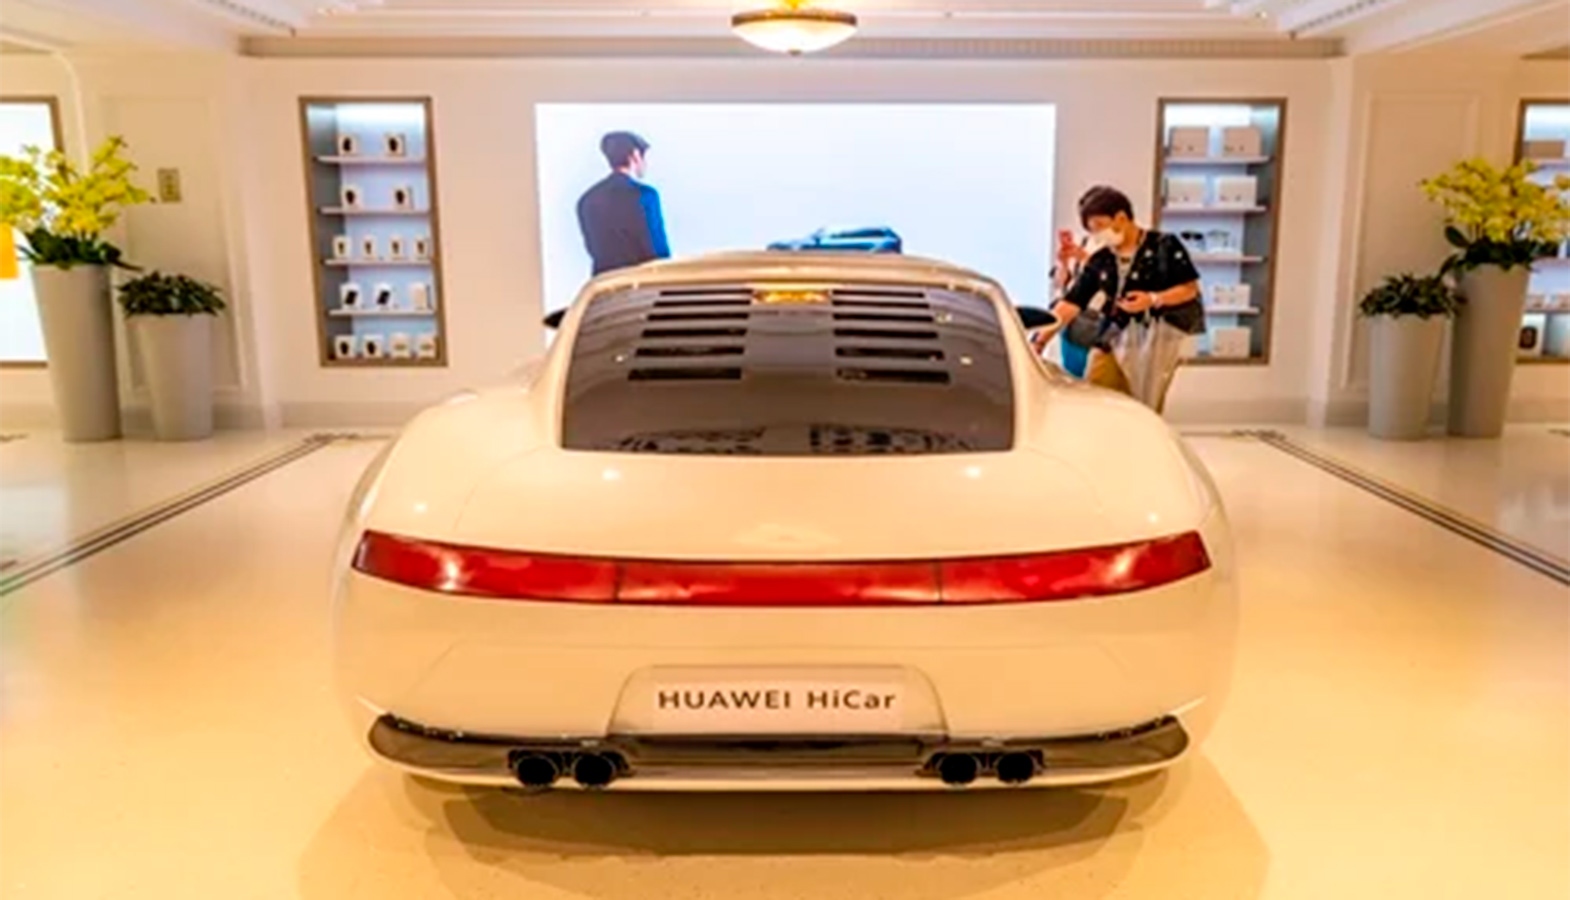 China Has Introduced The World's First Car With The Huawei HiCar Operating System